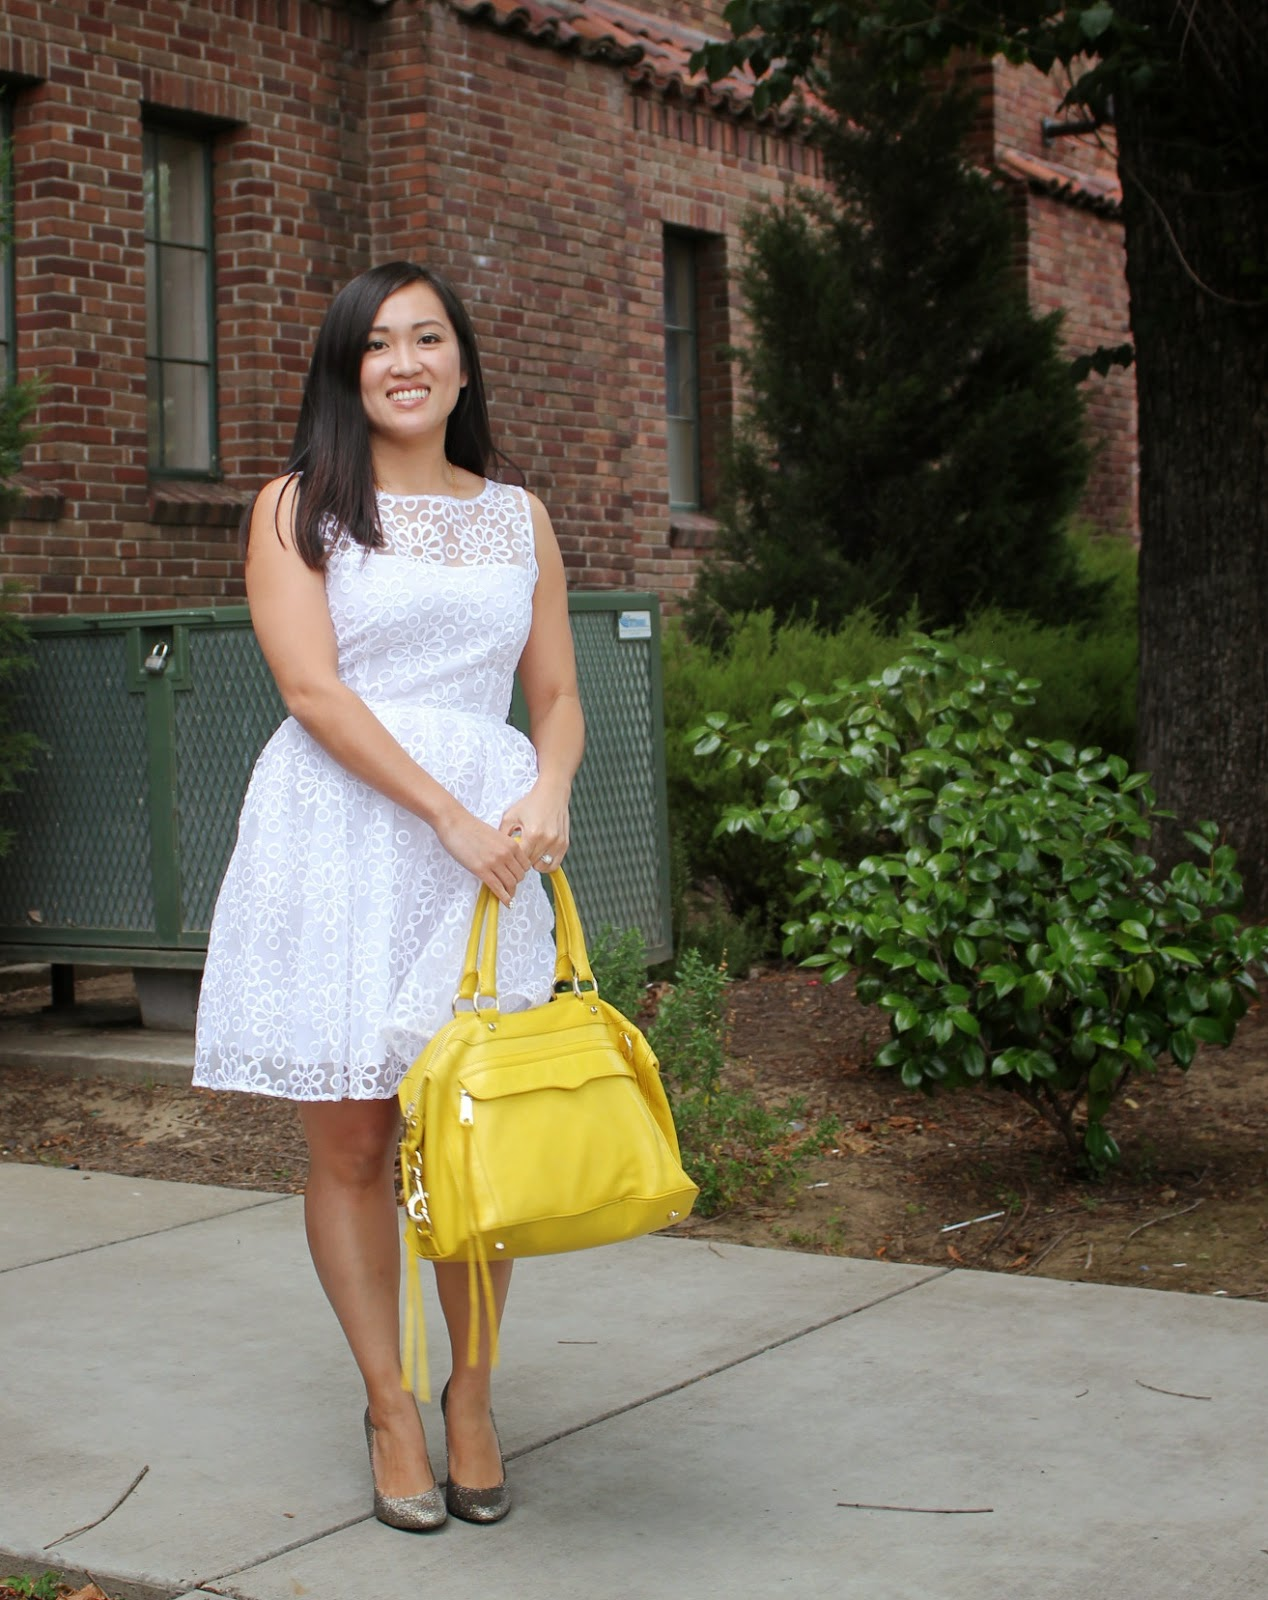 et Beaute, BB Dakota Huela Organza Embroidered Dress, Rebecca Minkoff MAB canary yellow, Sole Society Brooklyn Glitter Pumps